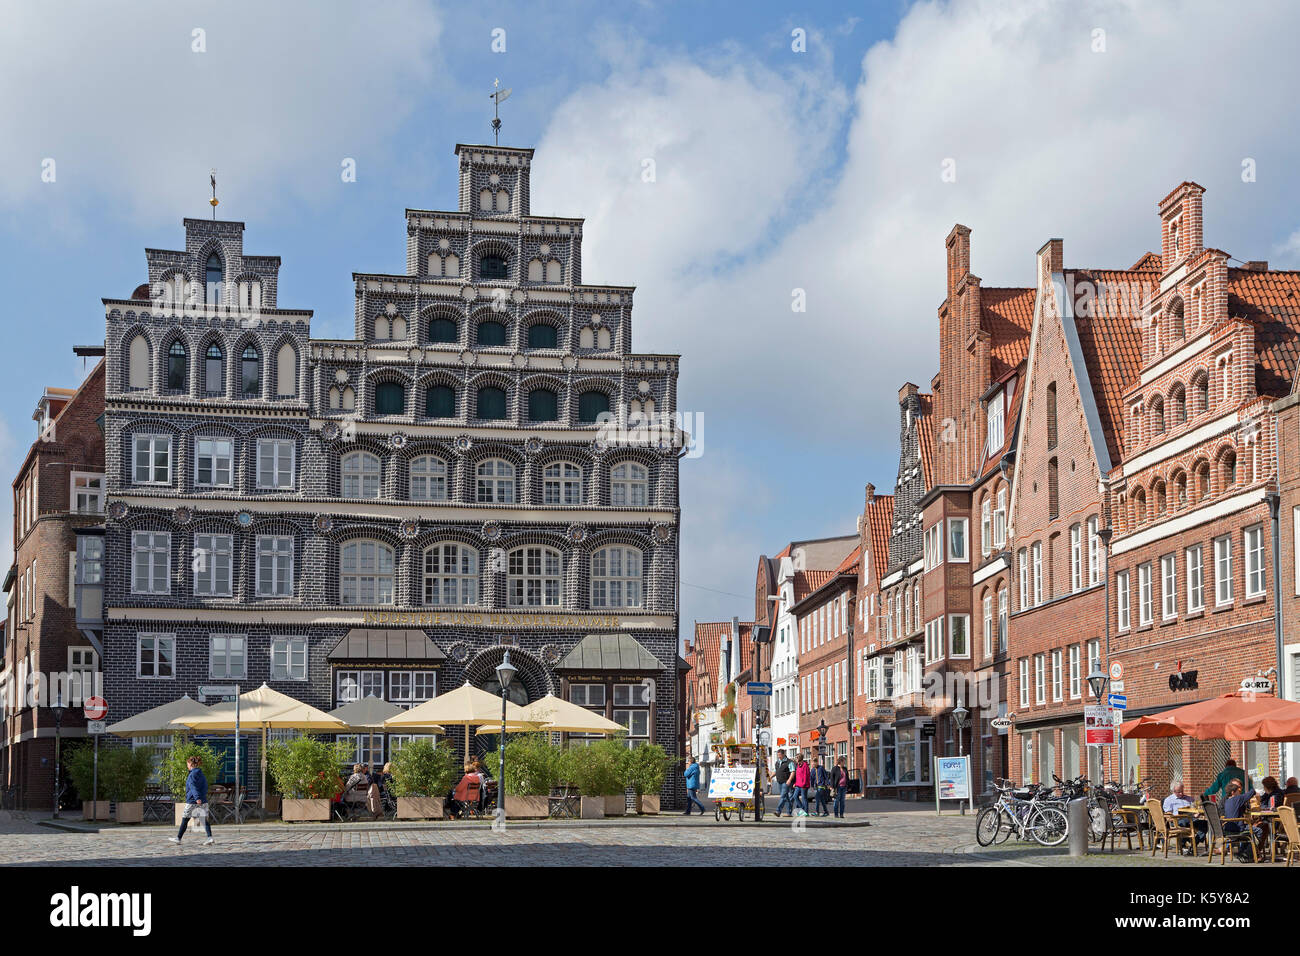 chamber of industry and commerce, Am Sande, Lueneburg, Lower Saxony, Germany - Stock Image